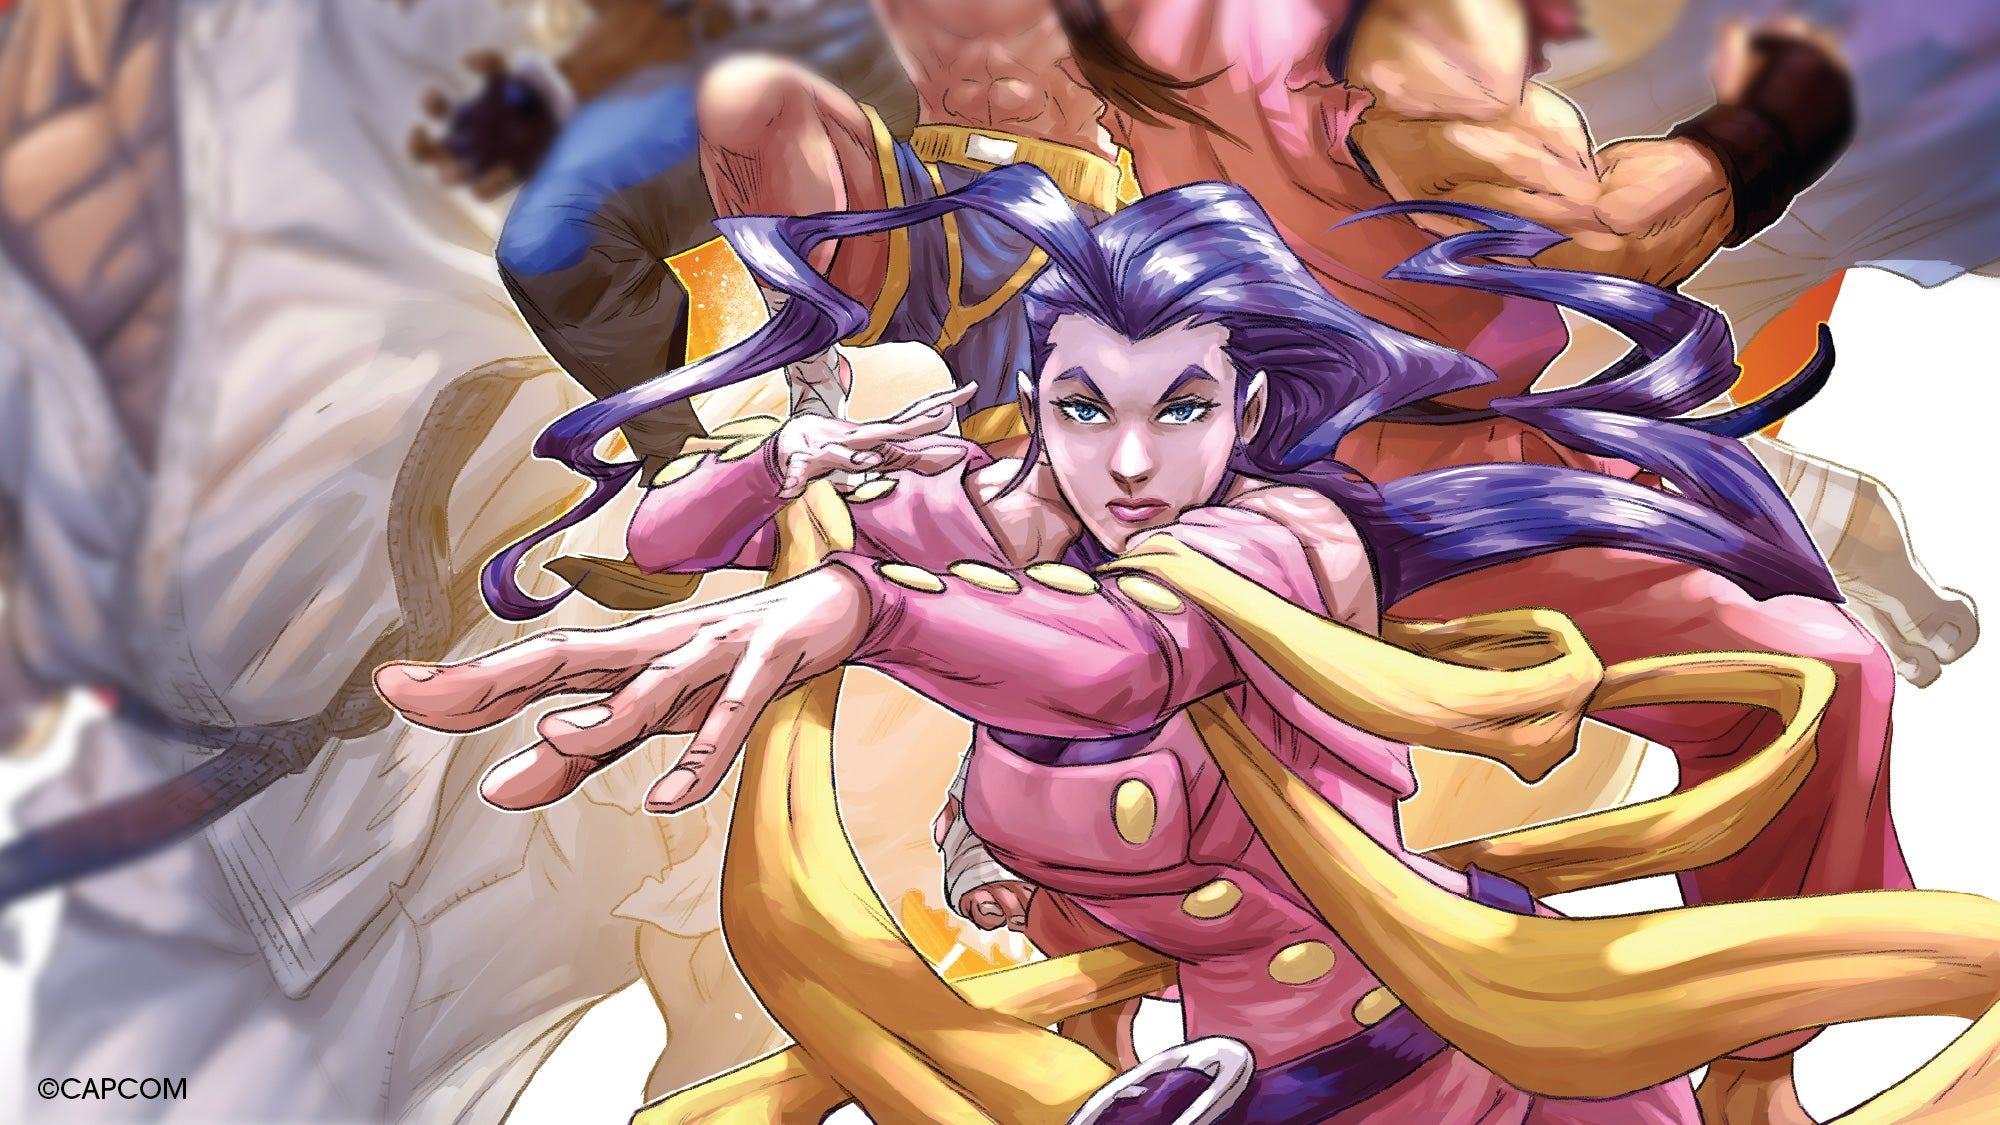 A close-up of Rose from Andie Tong's front cover for the Street Fighter Alpha: Warriors' Dreams double LP.